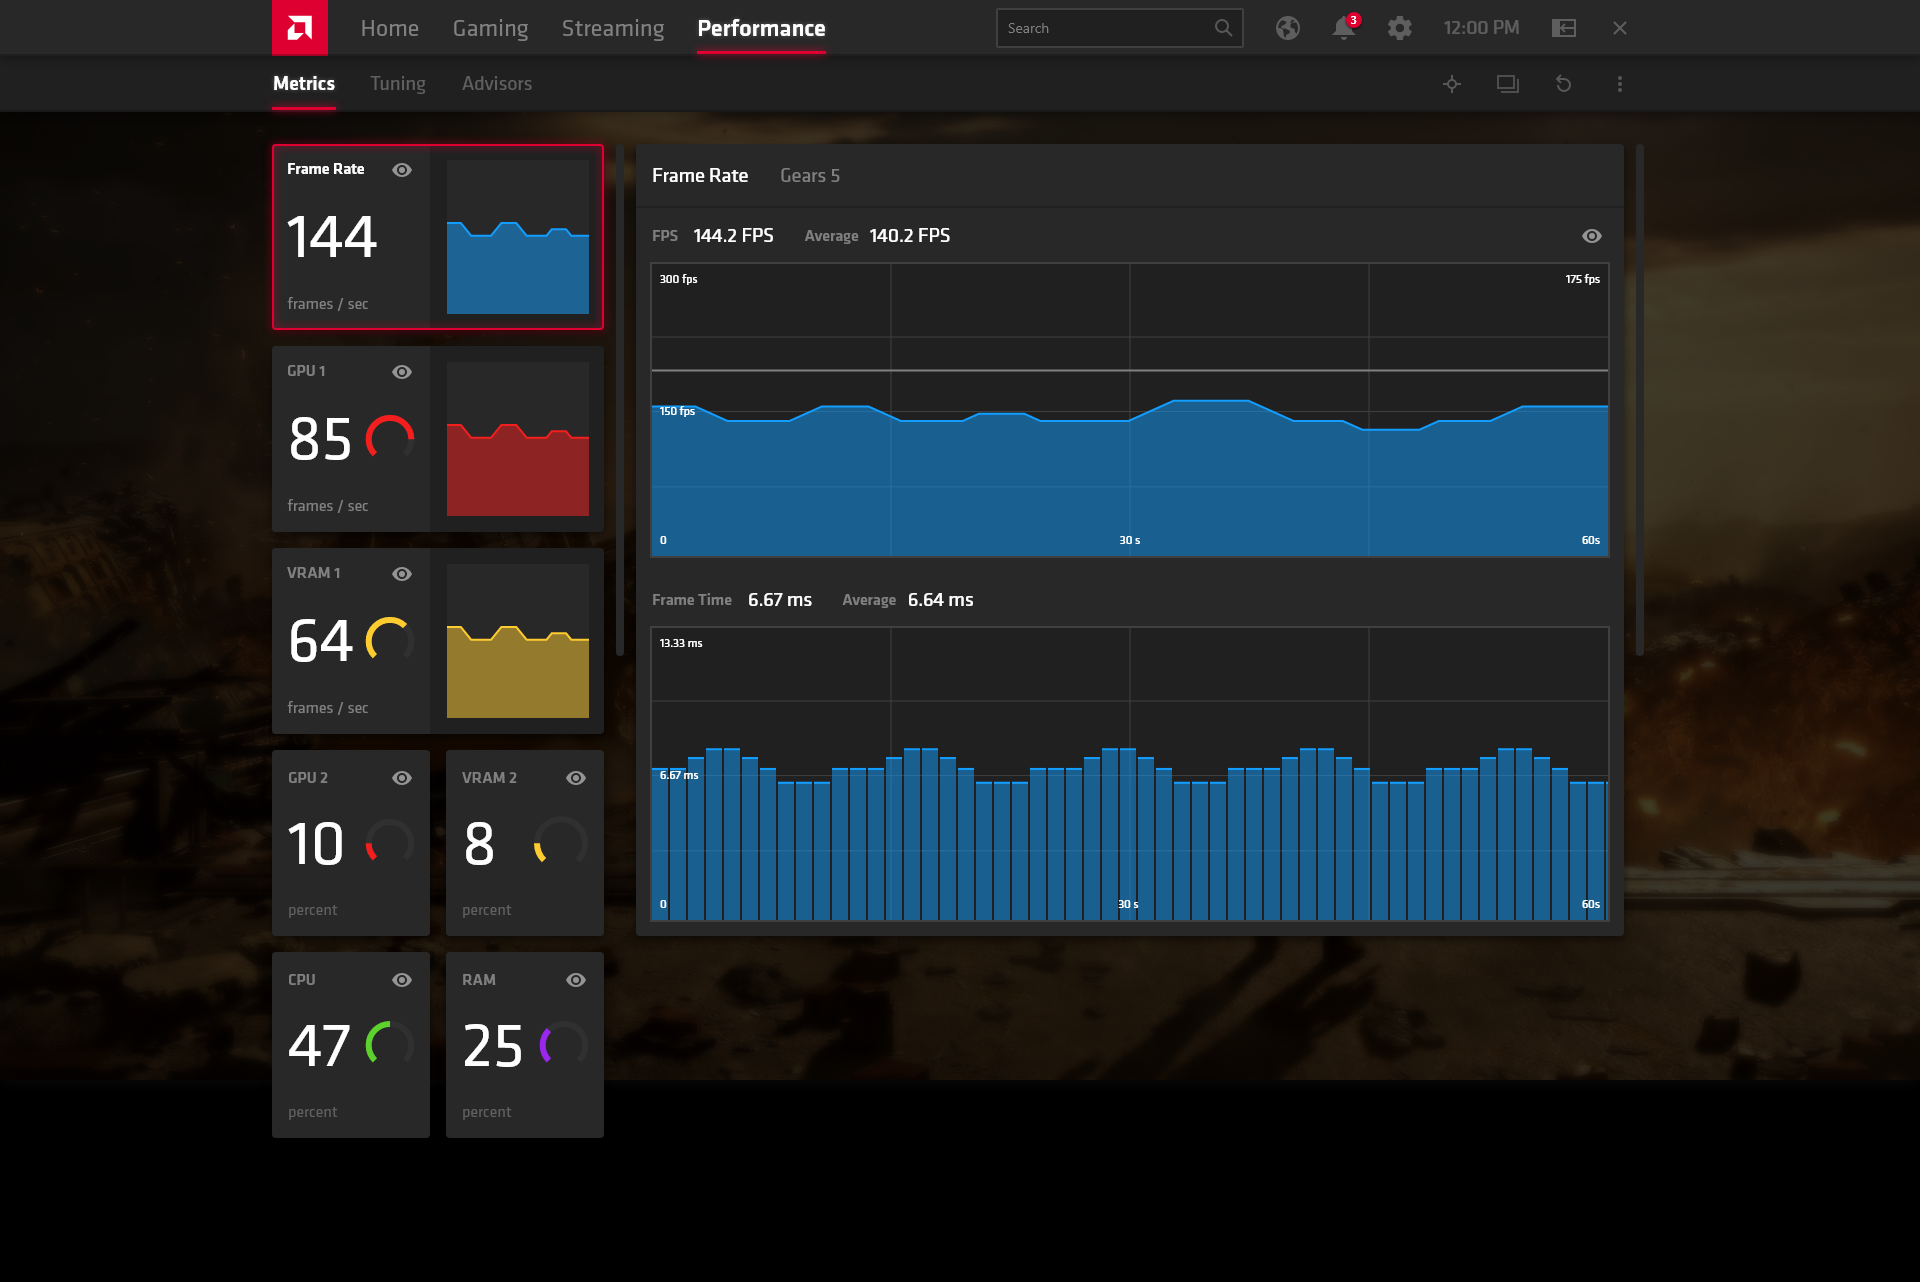 Amd S Radeon Graphics Card Software Gets A Major Refresh With Impressive New Features Vg247